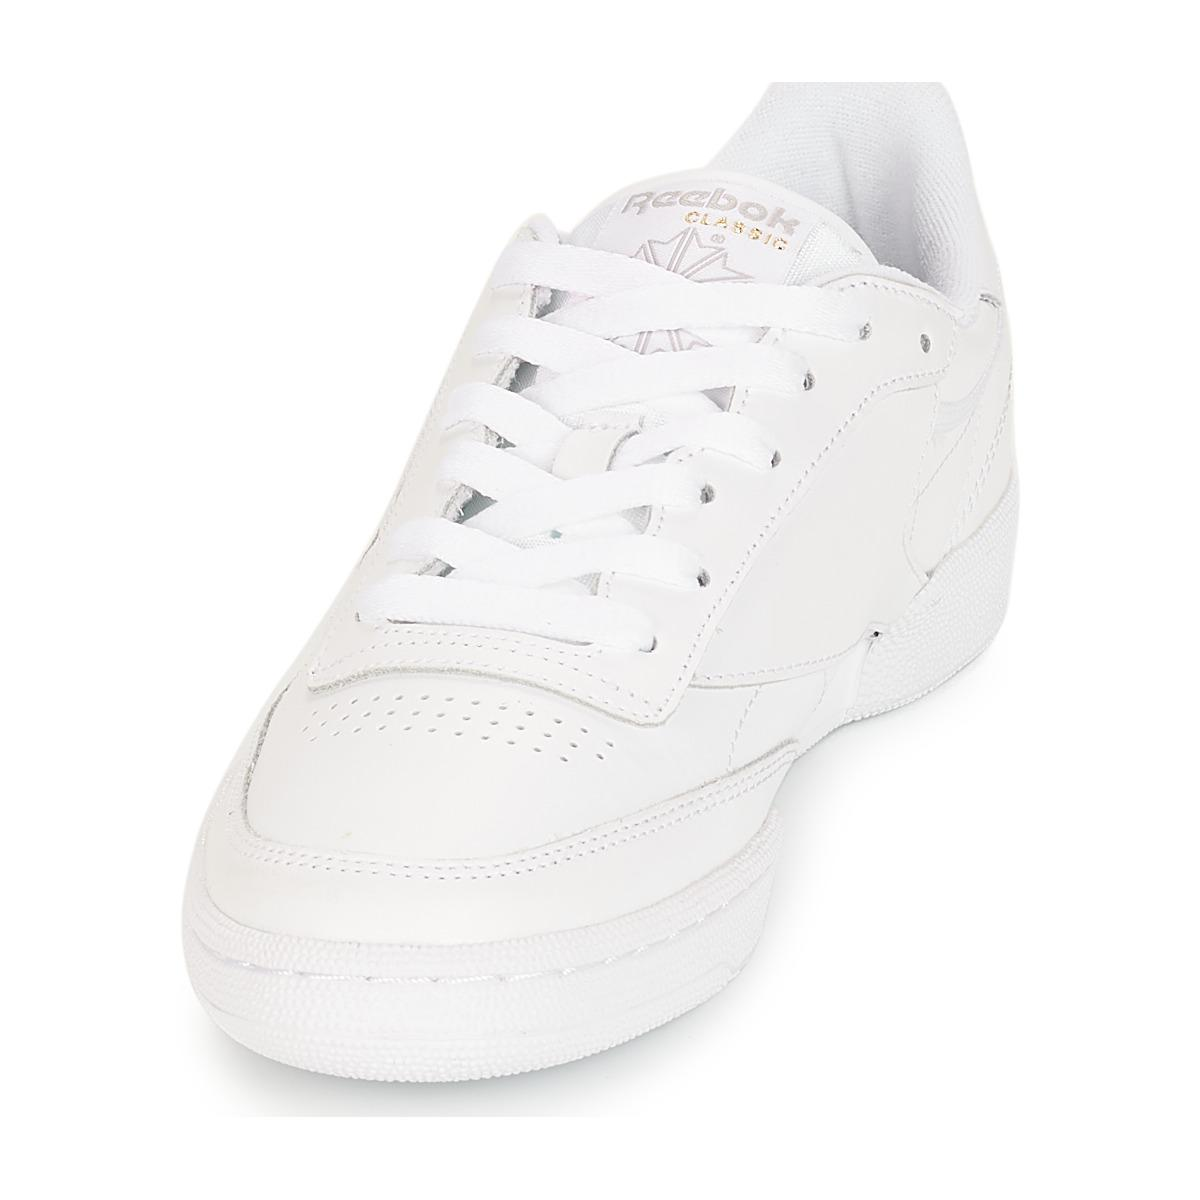 Reebok Club C 85 Shoes (trainers) in White - Save 30%